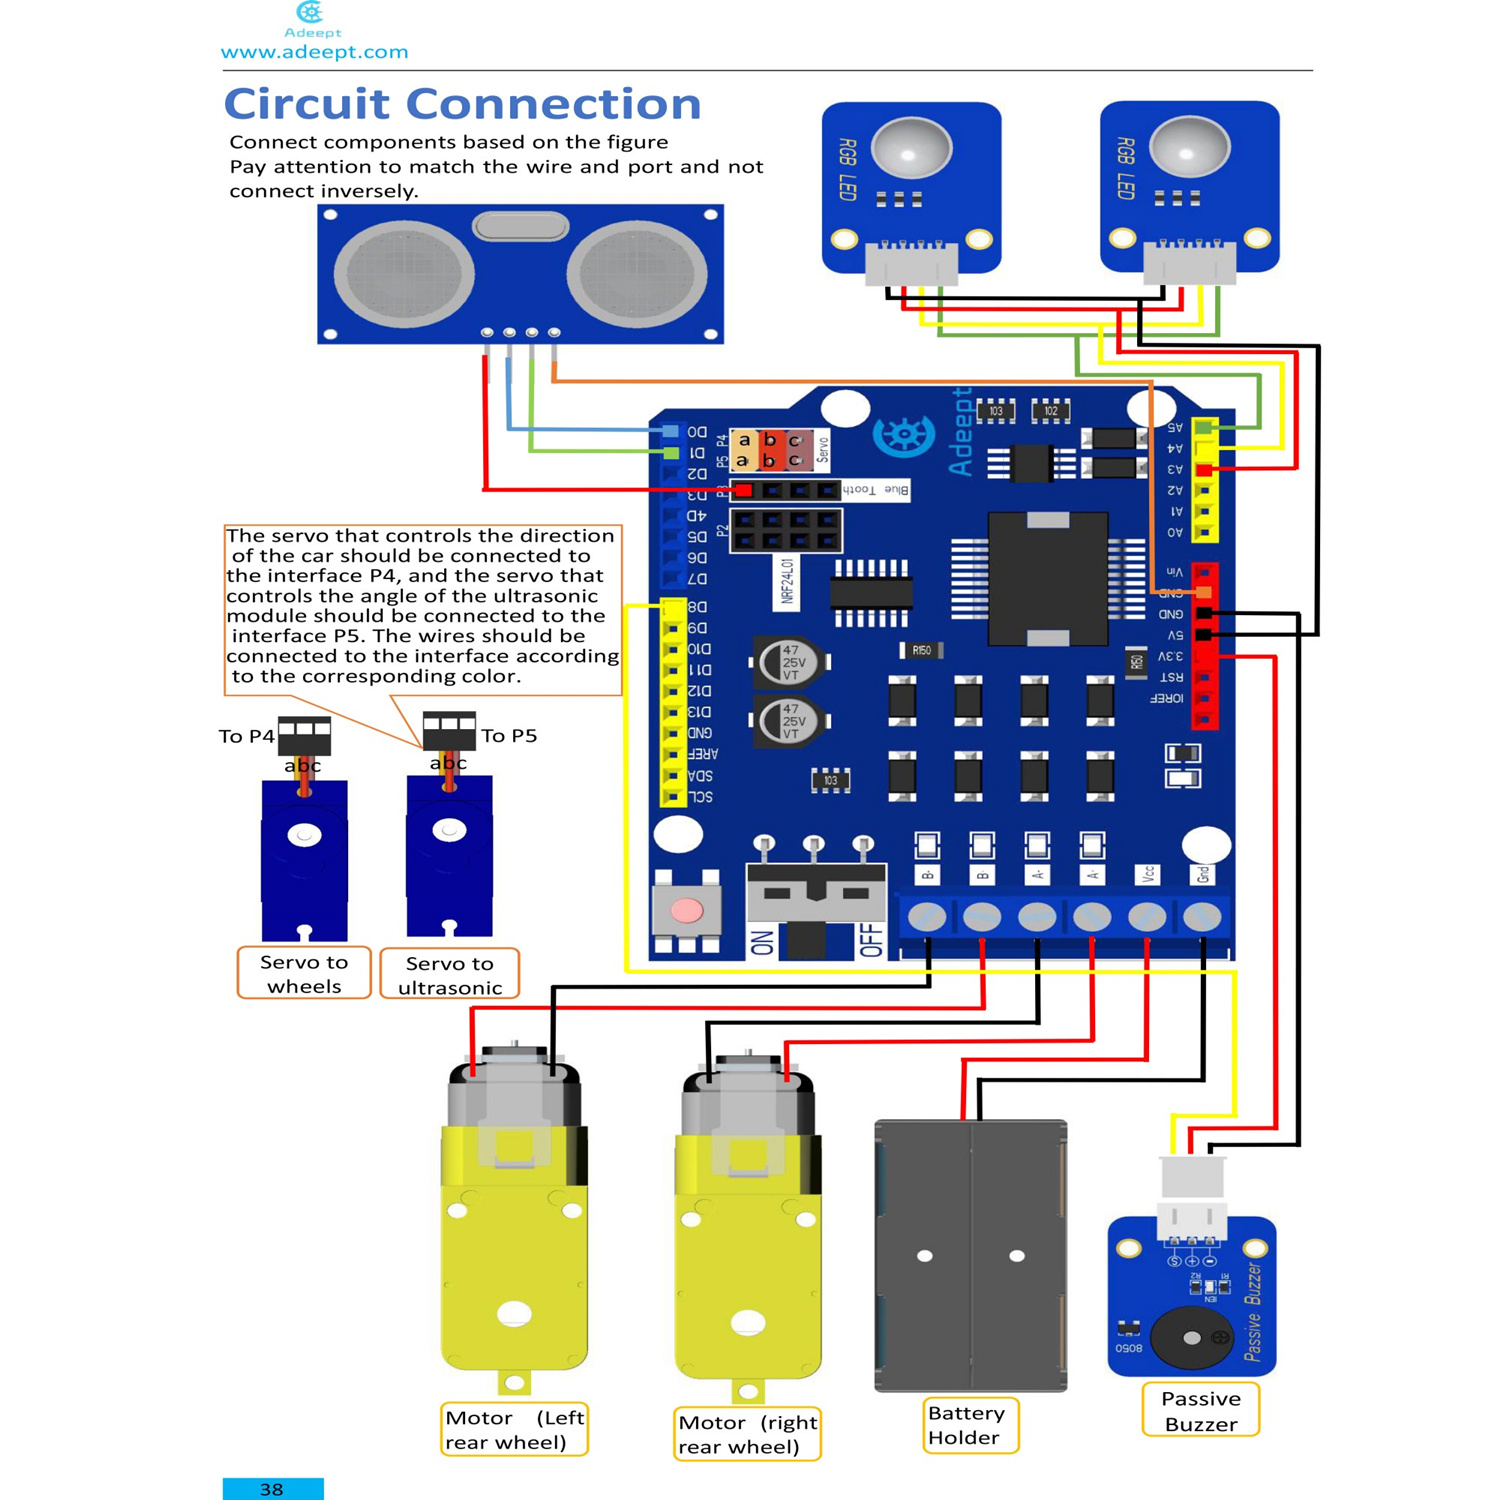 Adeept Remote Control Smart Car Kit For Arduino Based On